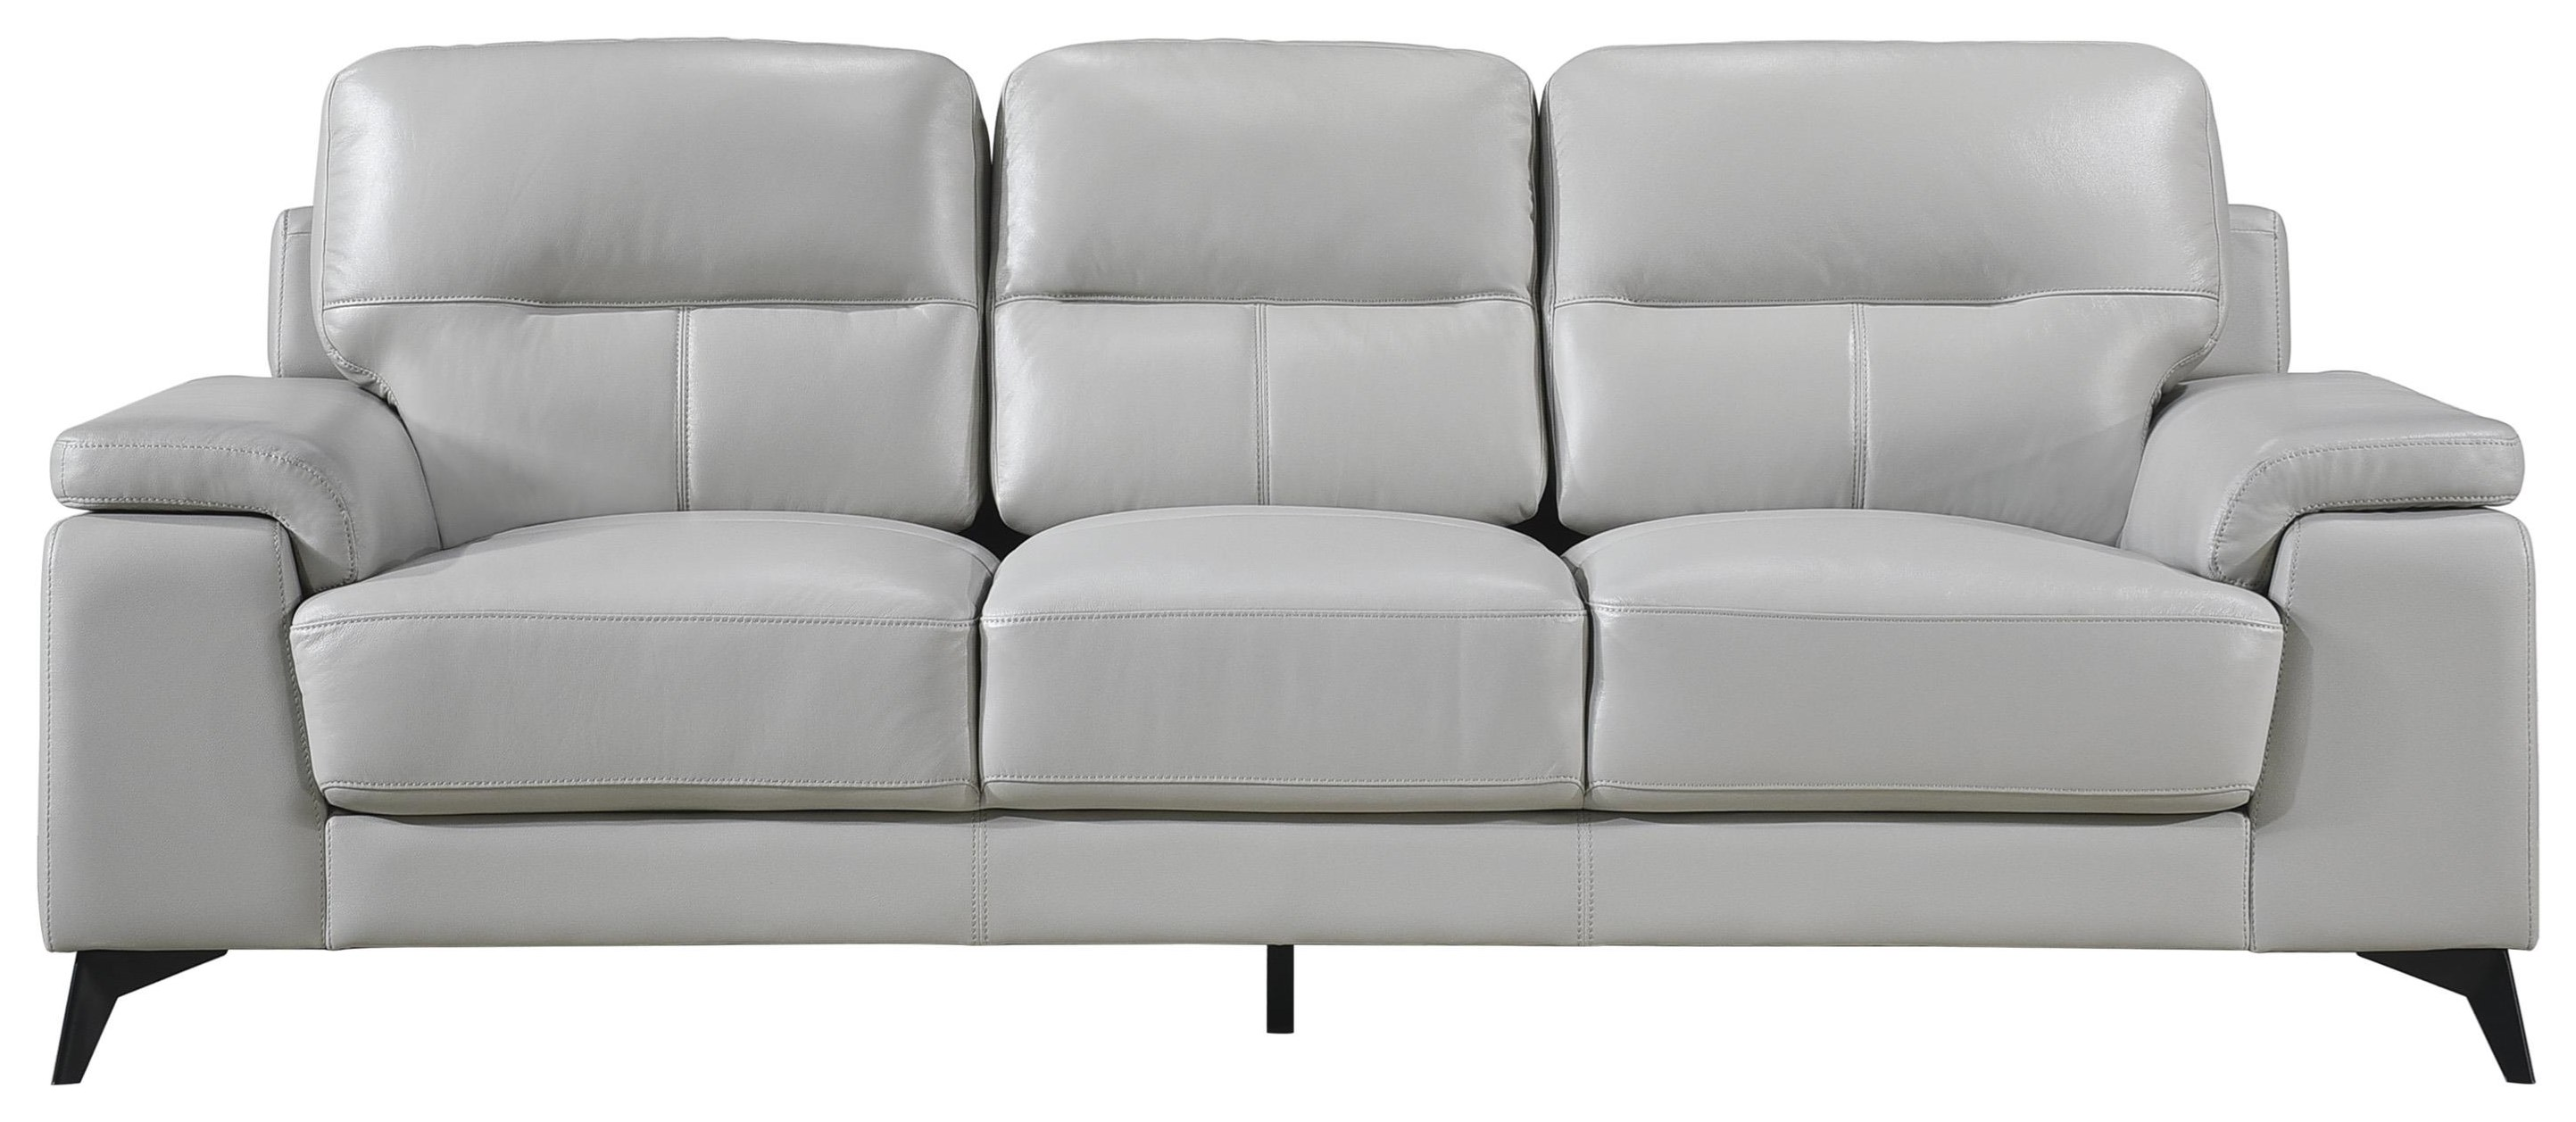 Mischa Contemporary Leather Match Sofa by Homelegance at Darvin Furniture